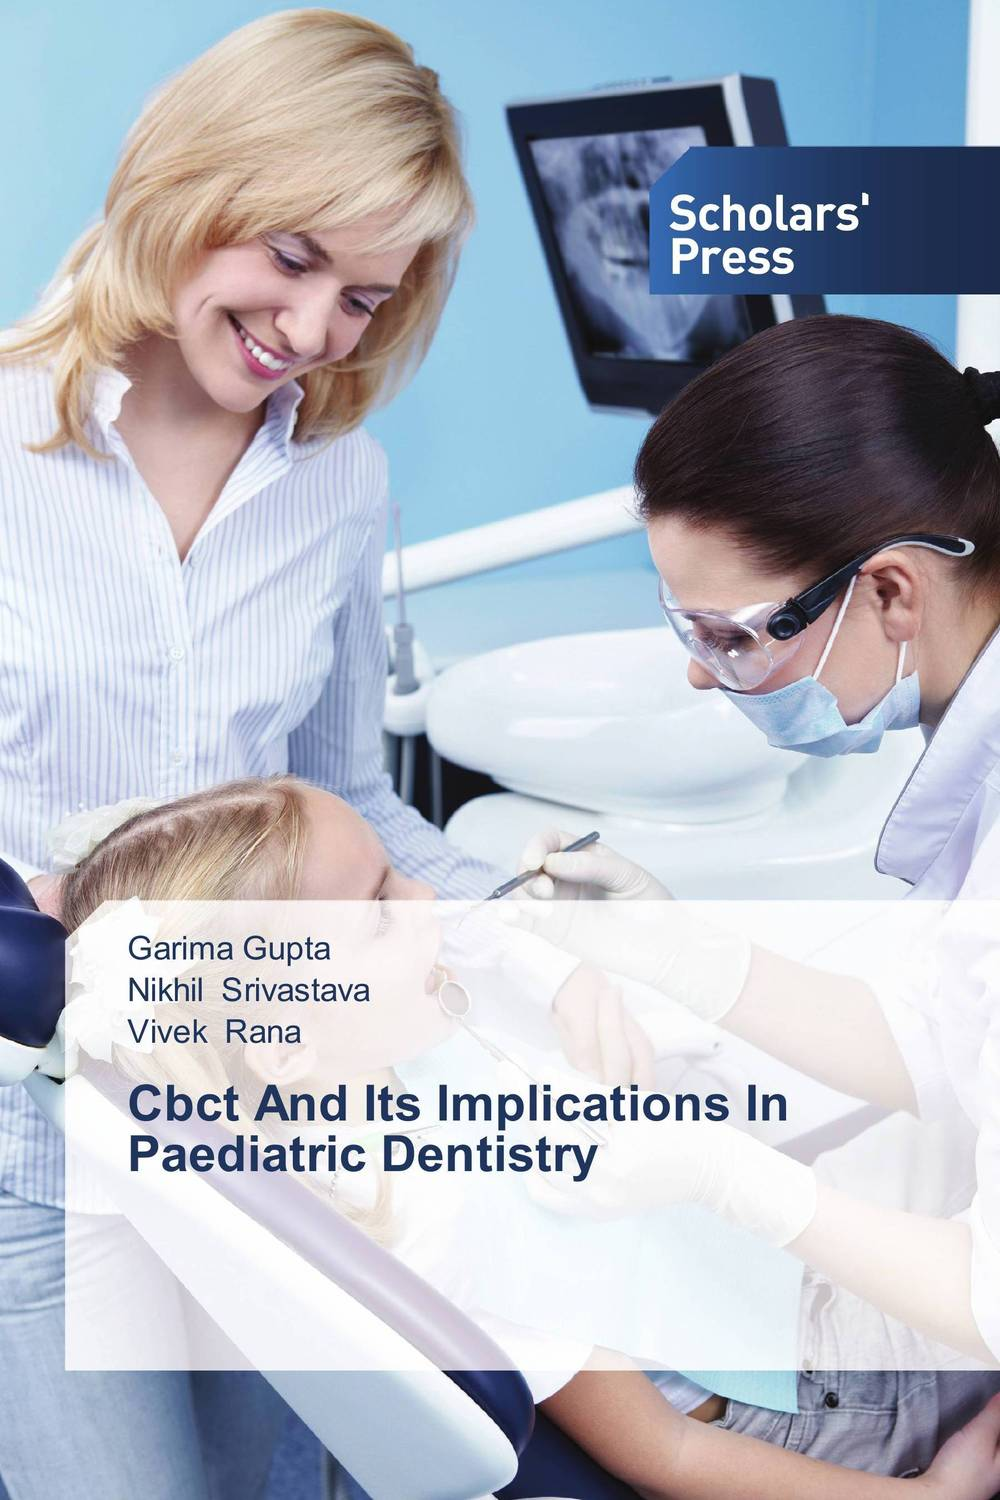 Cbct And Its Implications In Paediatric Dentistry shaveta kaushal and atamjit singh pal dental implants and its design